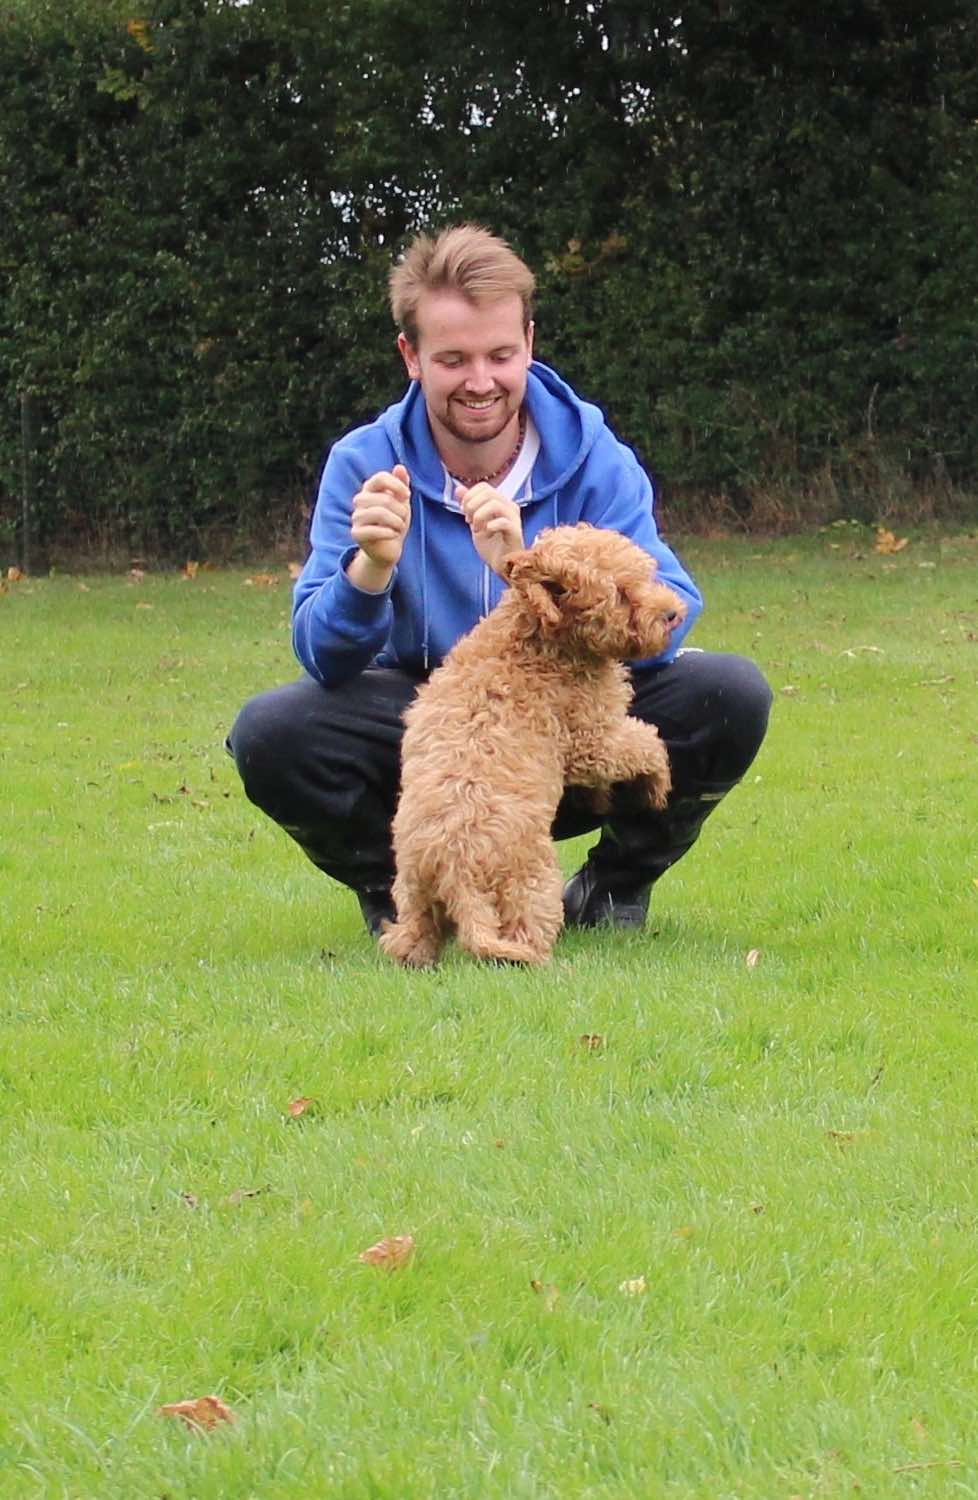 James with Wilf, doing some training, but I think it was just about them having fun!!!